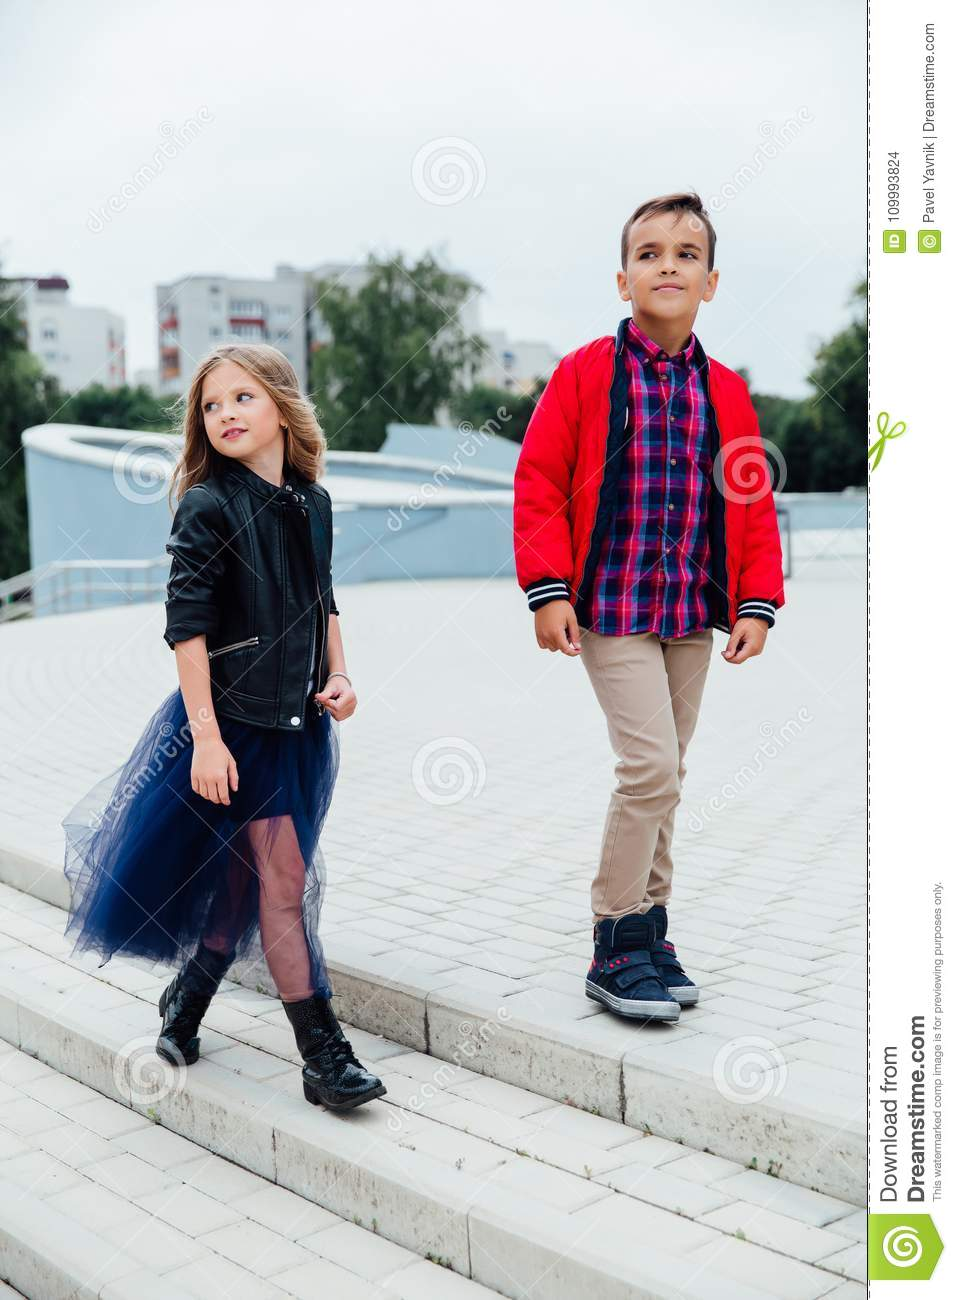 attitude boy and girl